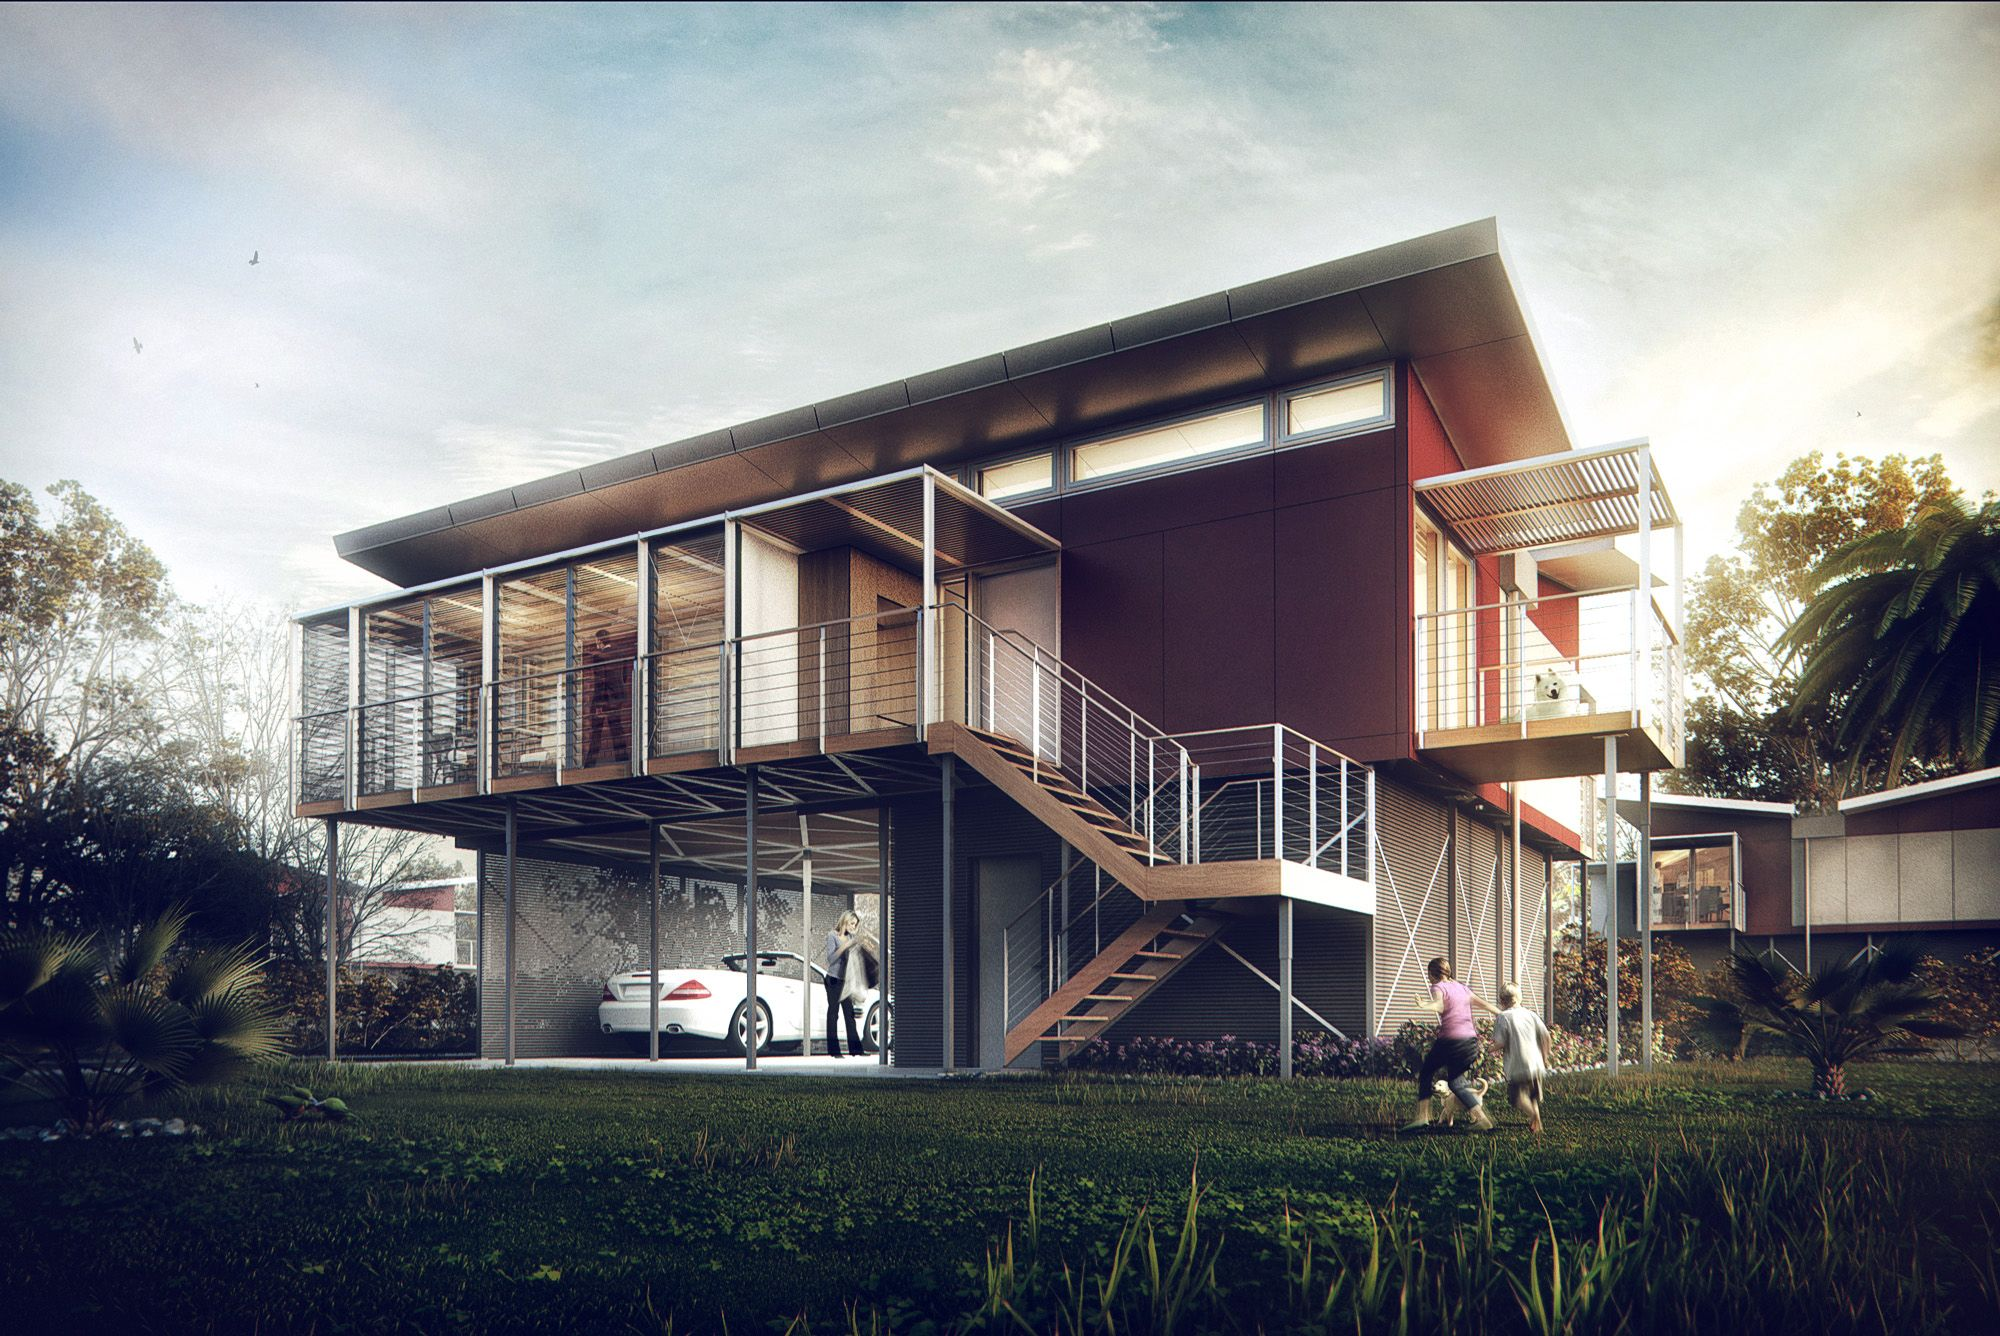 Kiribati house by s rgio mer ces architecture 3d cgsociety buildings and architecture Home design architecture 3d